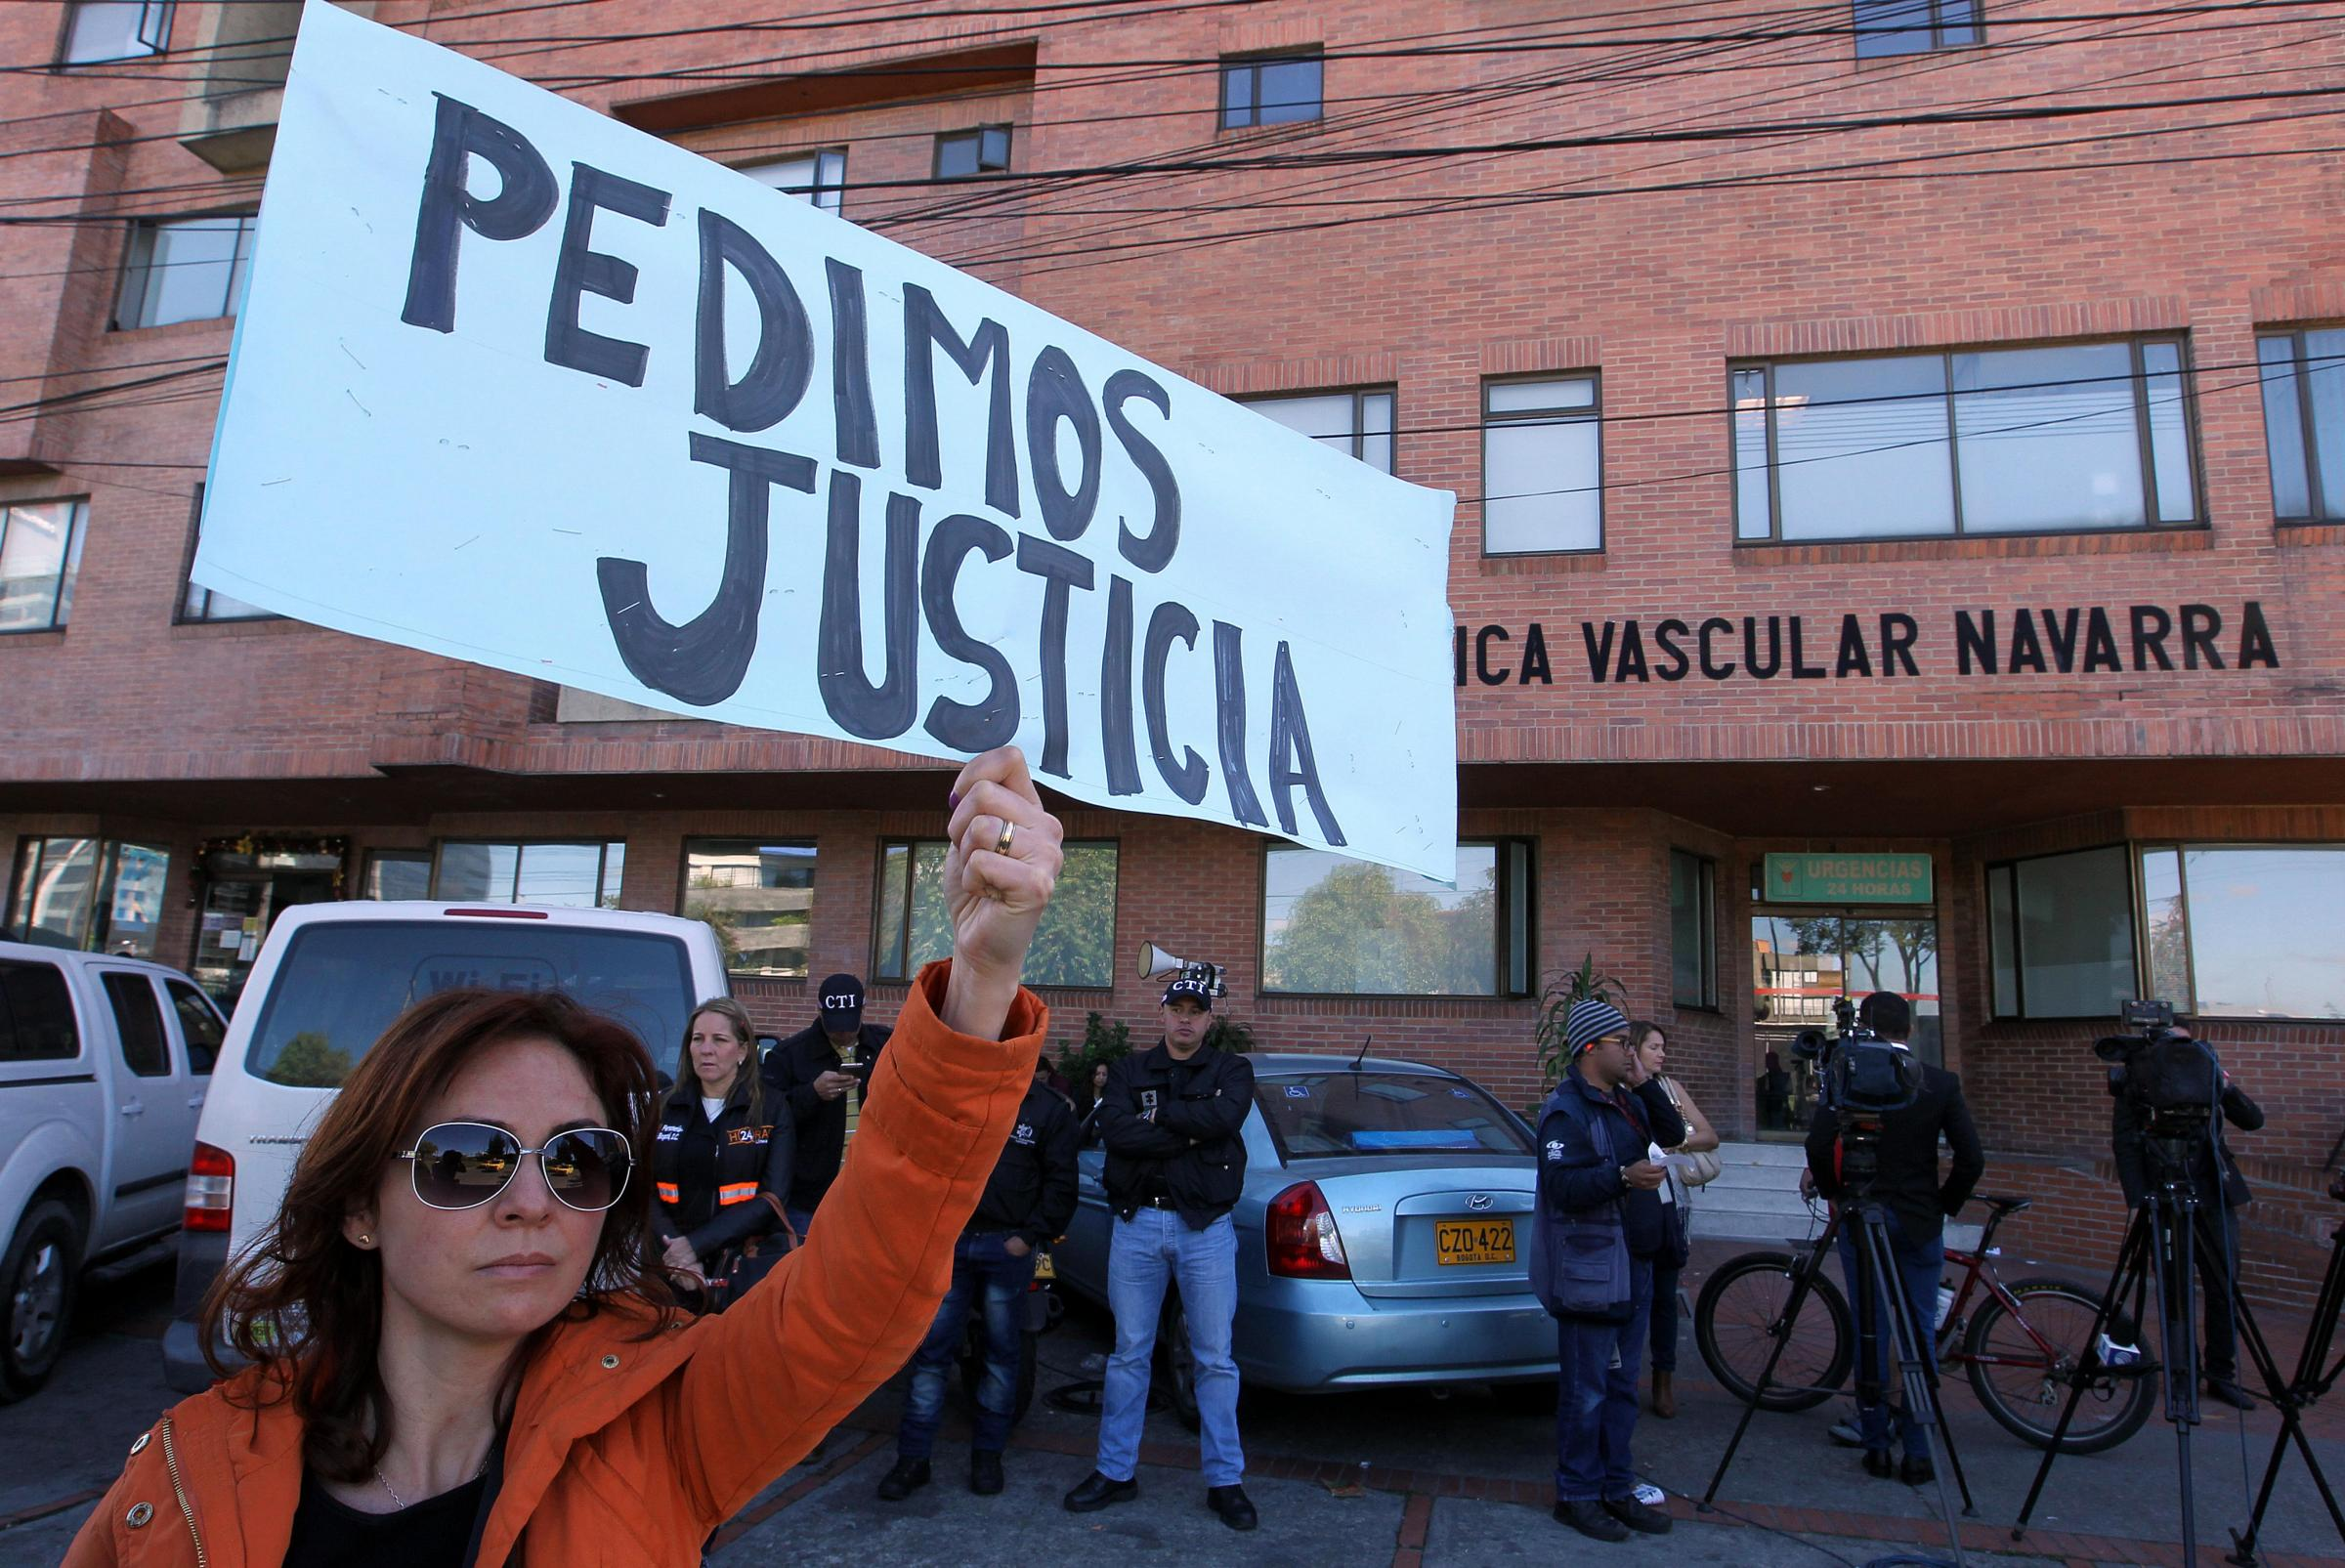 CIITZENS ASK FOR JUSTICE AFTER THE RAPE AND MURDER OF A 7 YEAR OLD IN BOGOTA